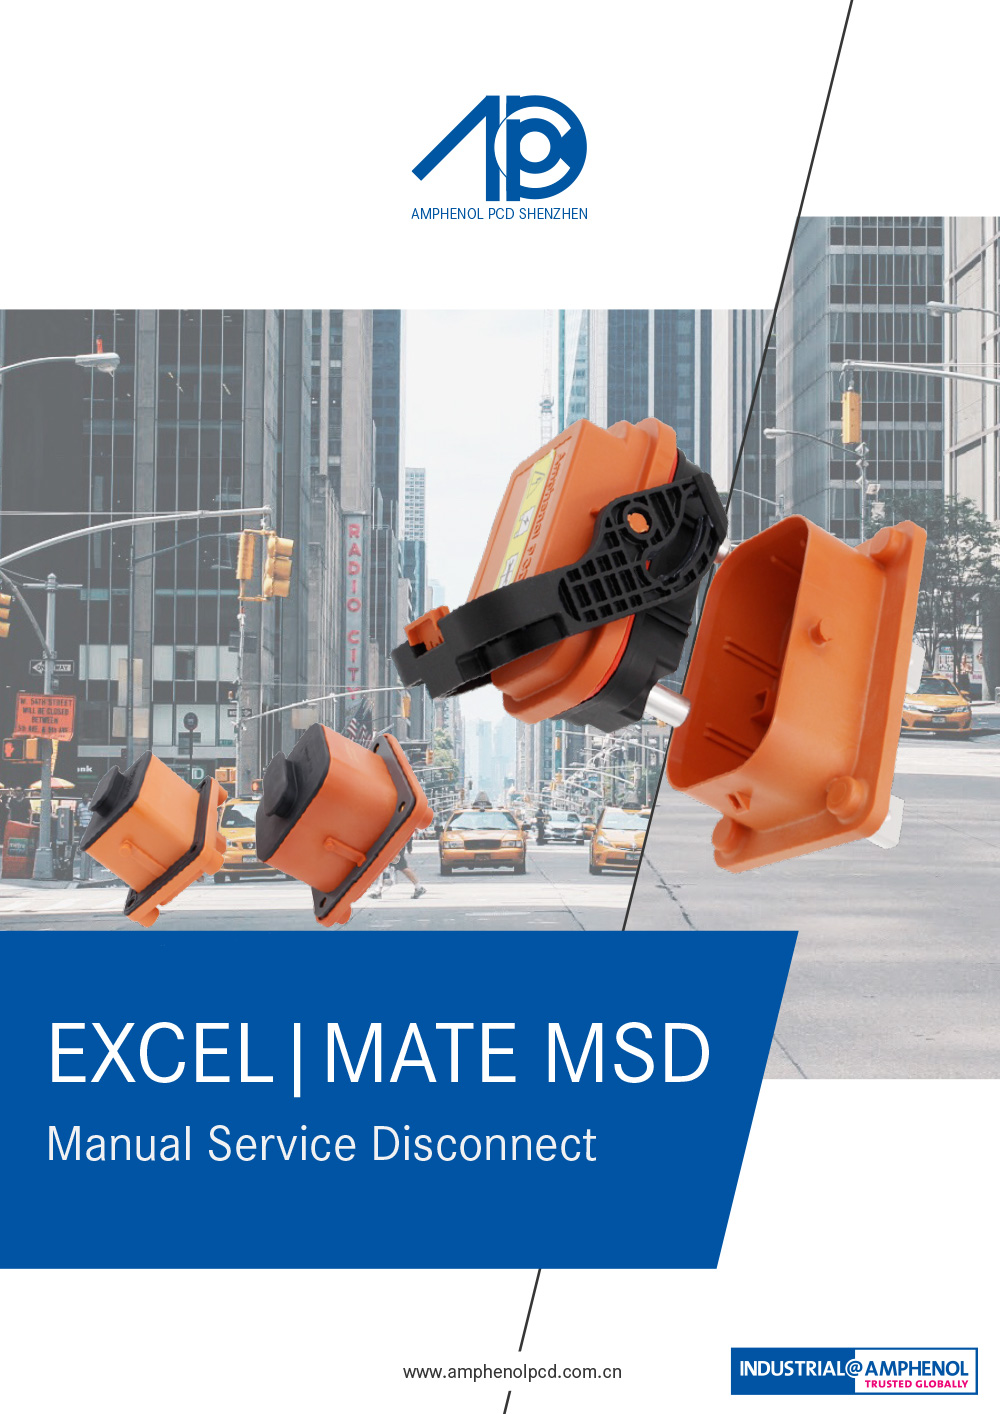 MSD (Manual Service Disconnects)